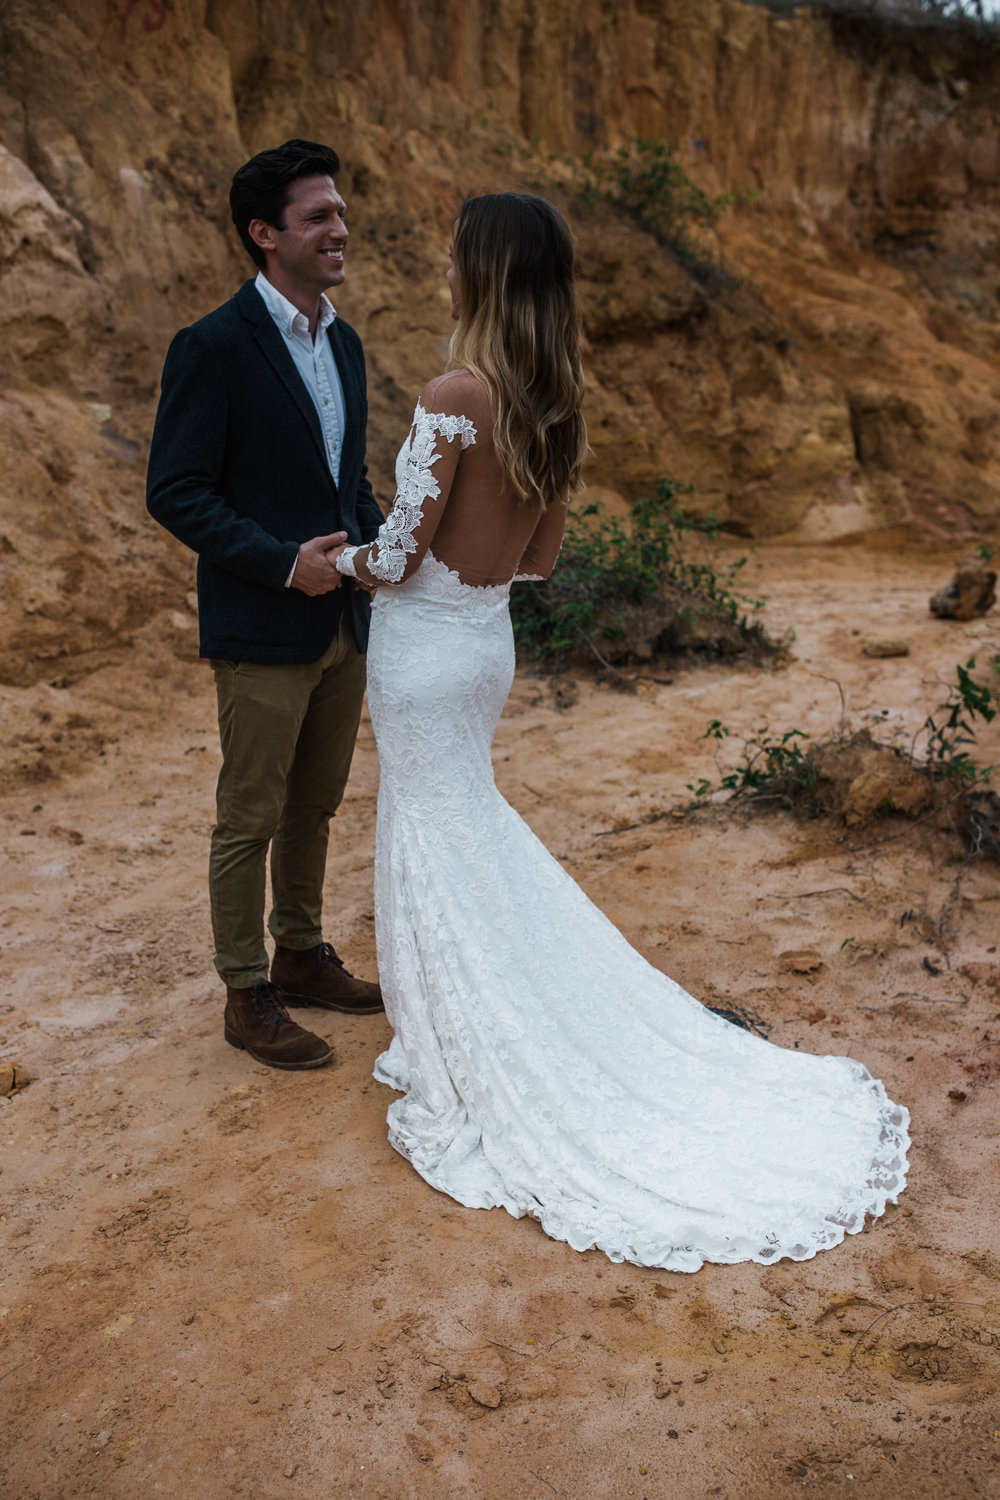 Vow exchange. Beautiful and romantic elopement in a mini canyon